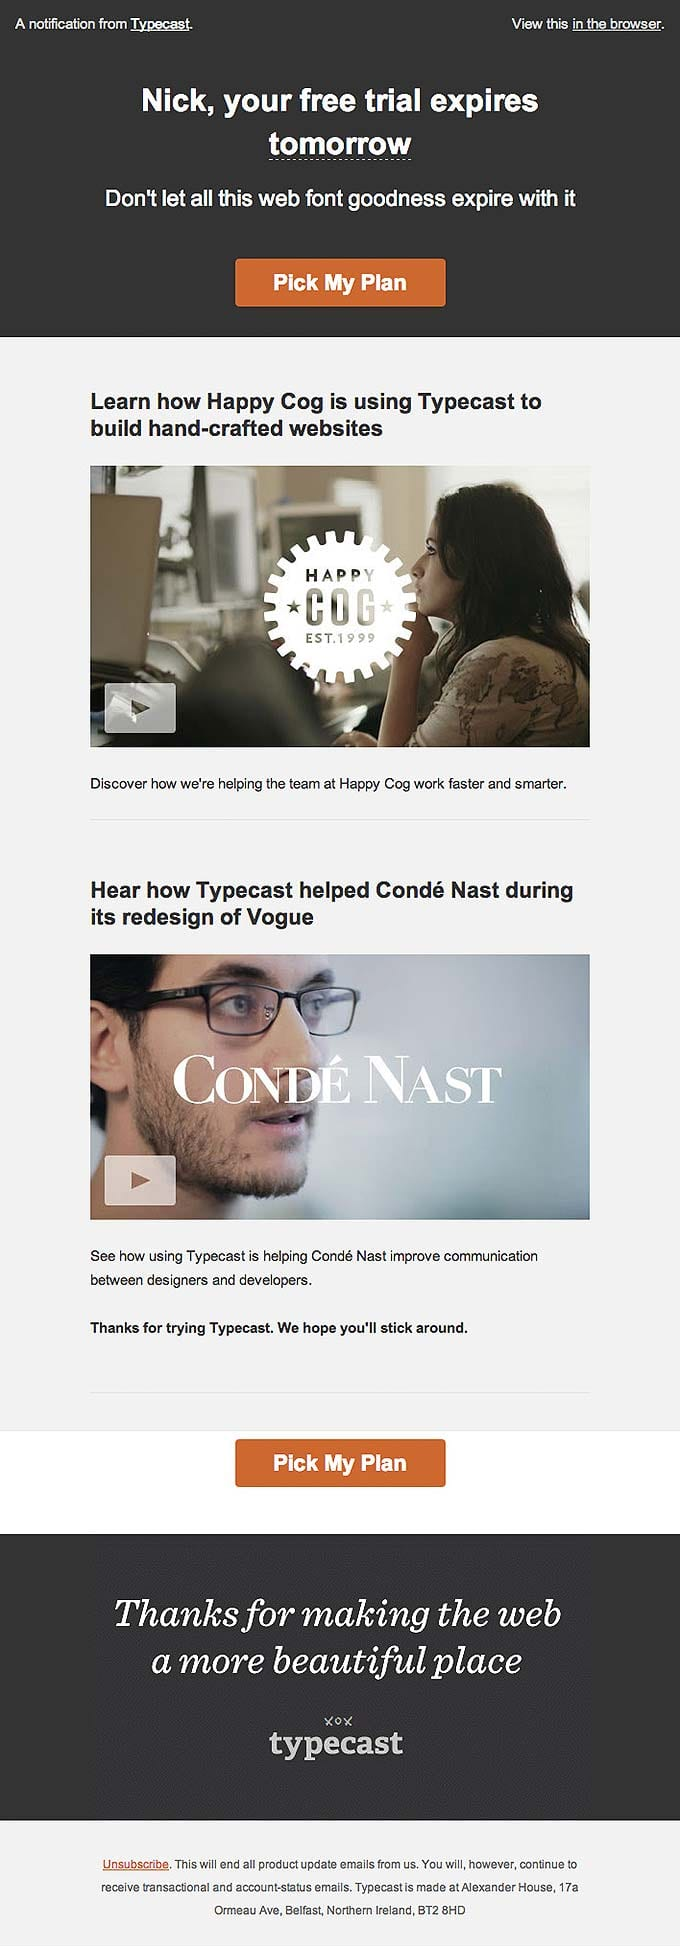 Onboarding Emails - Free Trial Ending Email - Typecast